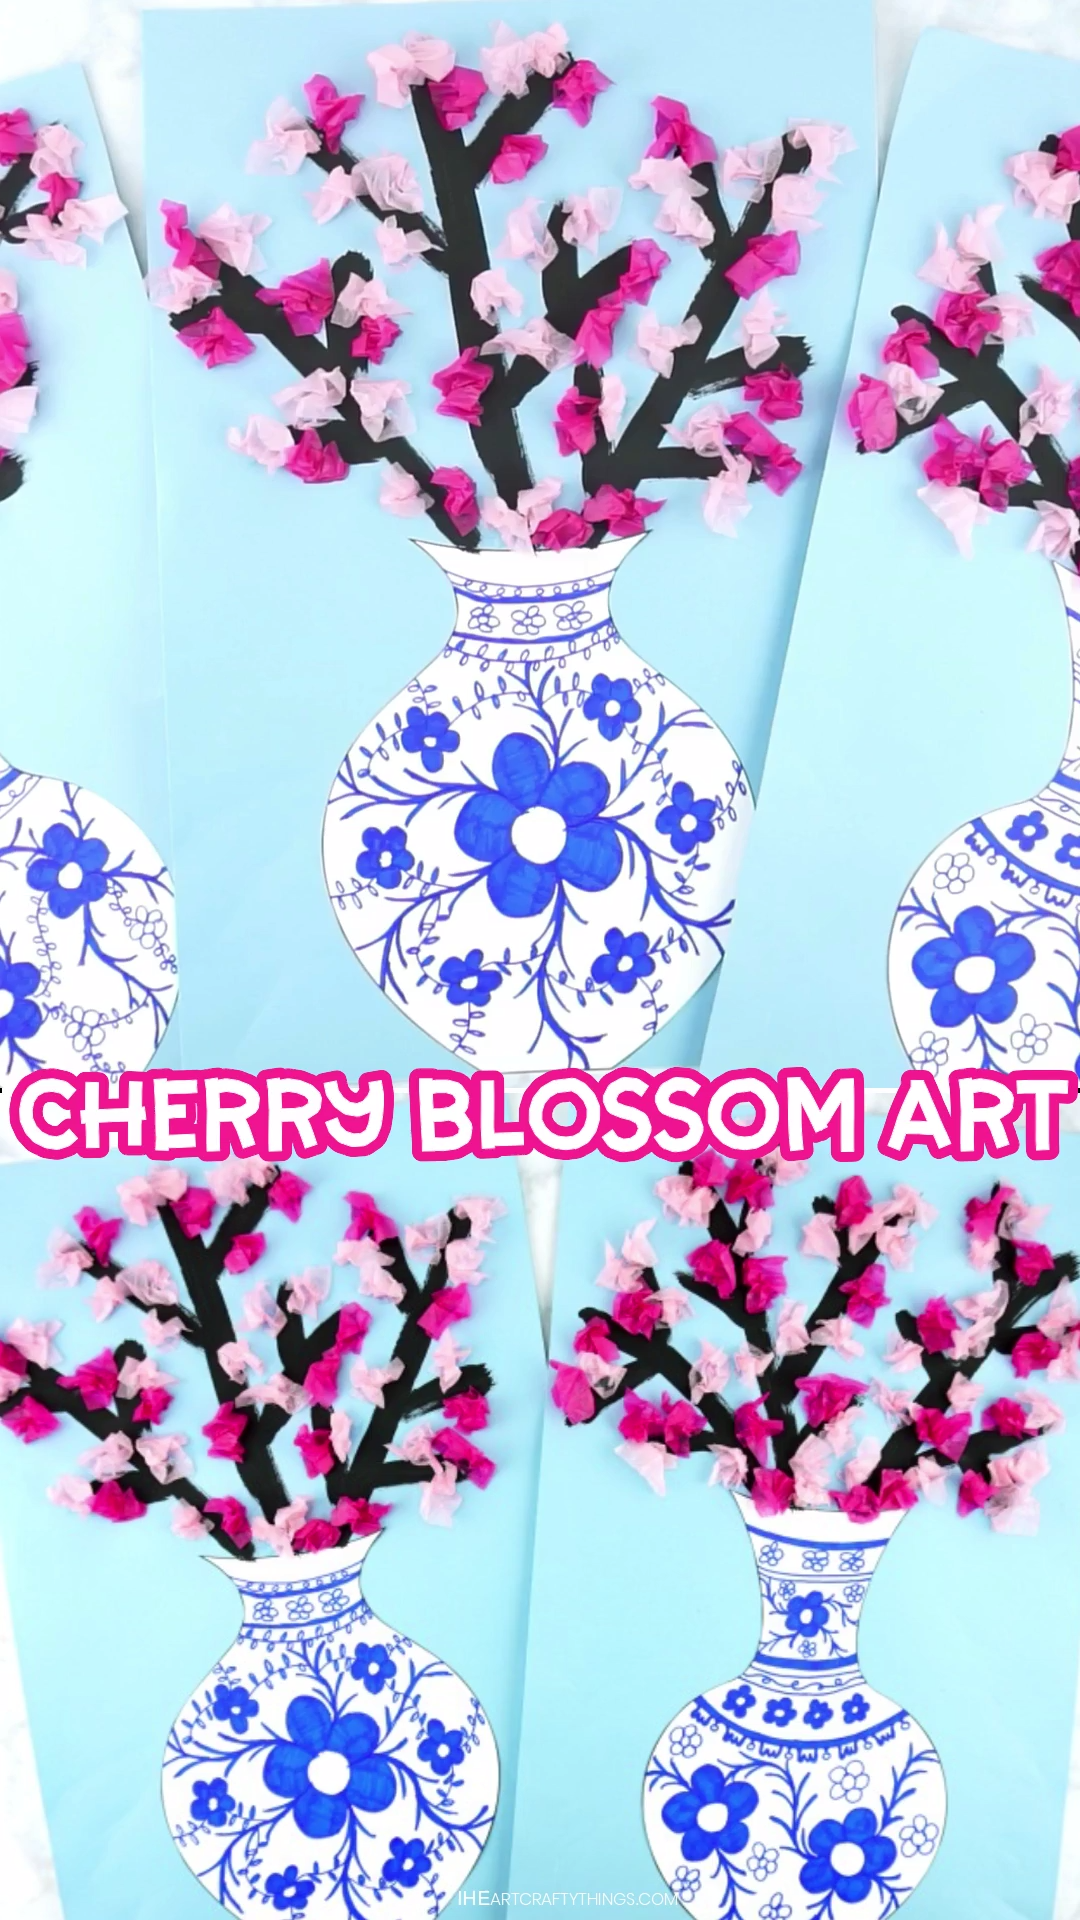 How to Make a Cherry Blossom Art Project #craft